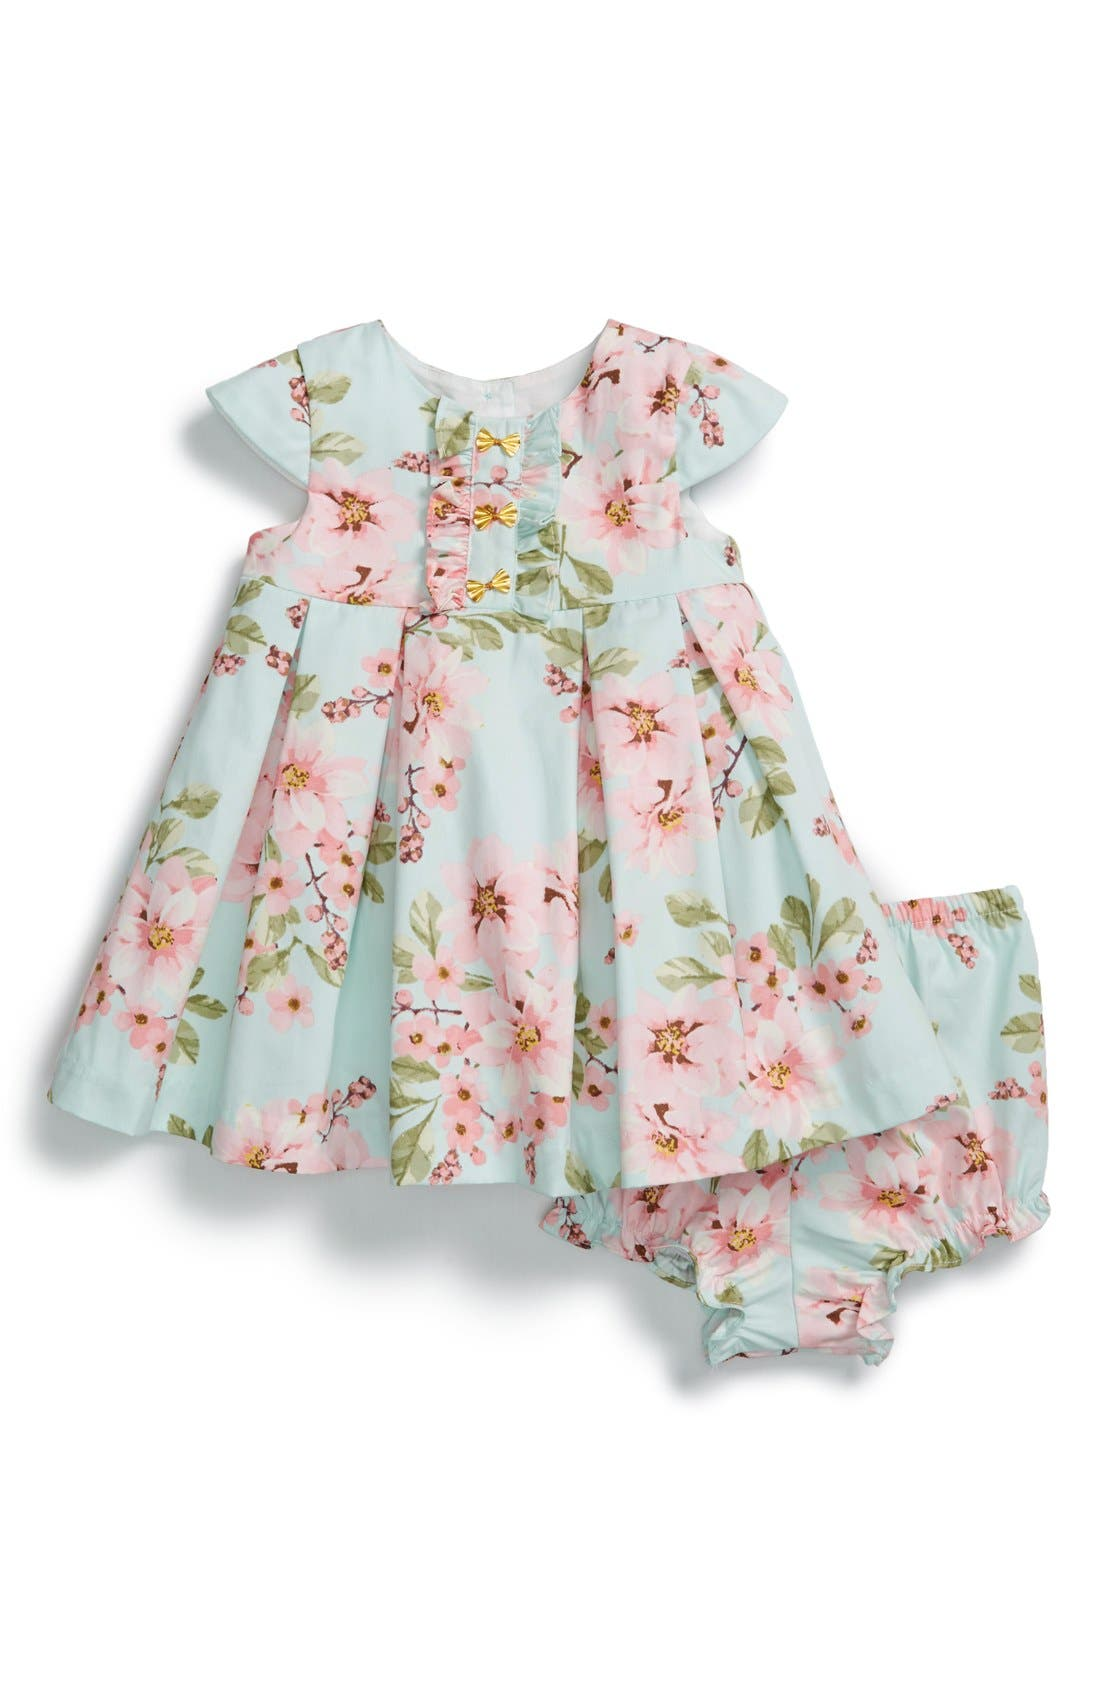 Designer Baby Girl Clothes. Explore the wondrous world of designer baby girl clothes. Discover a variety of playful and color-popping designs from global brands such as Dolce and Gabbana Kids, Moncler Kids, and Moschino Kids as well as pieces from the best new designers around.